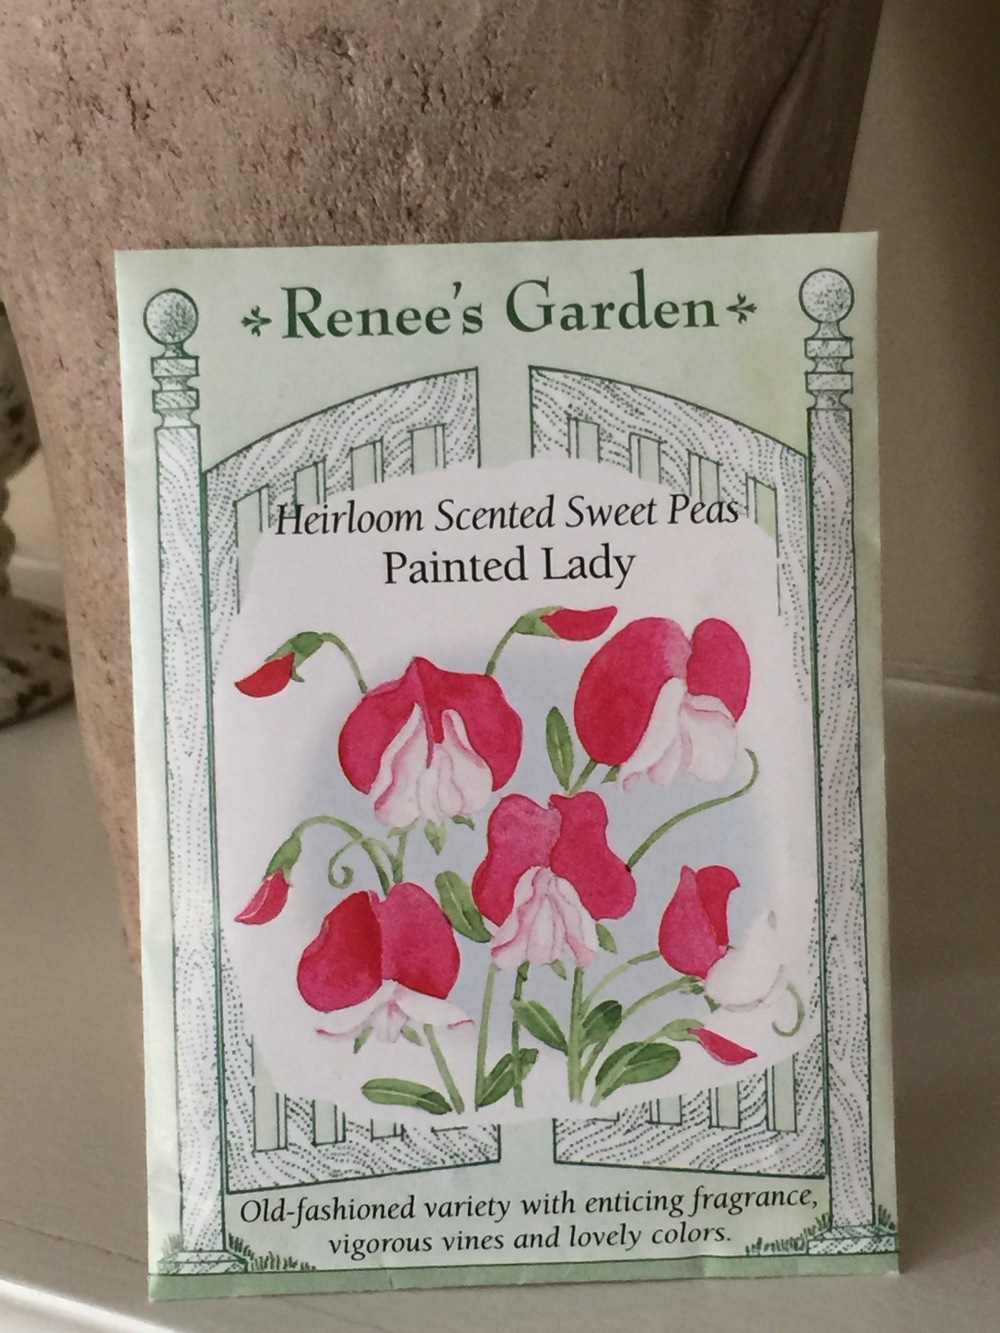 Panted Lady Sweet Pea Seeds